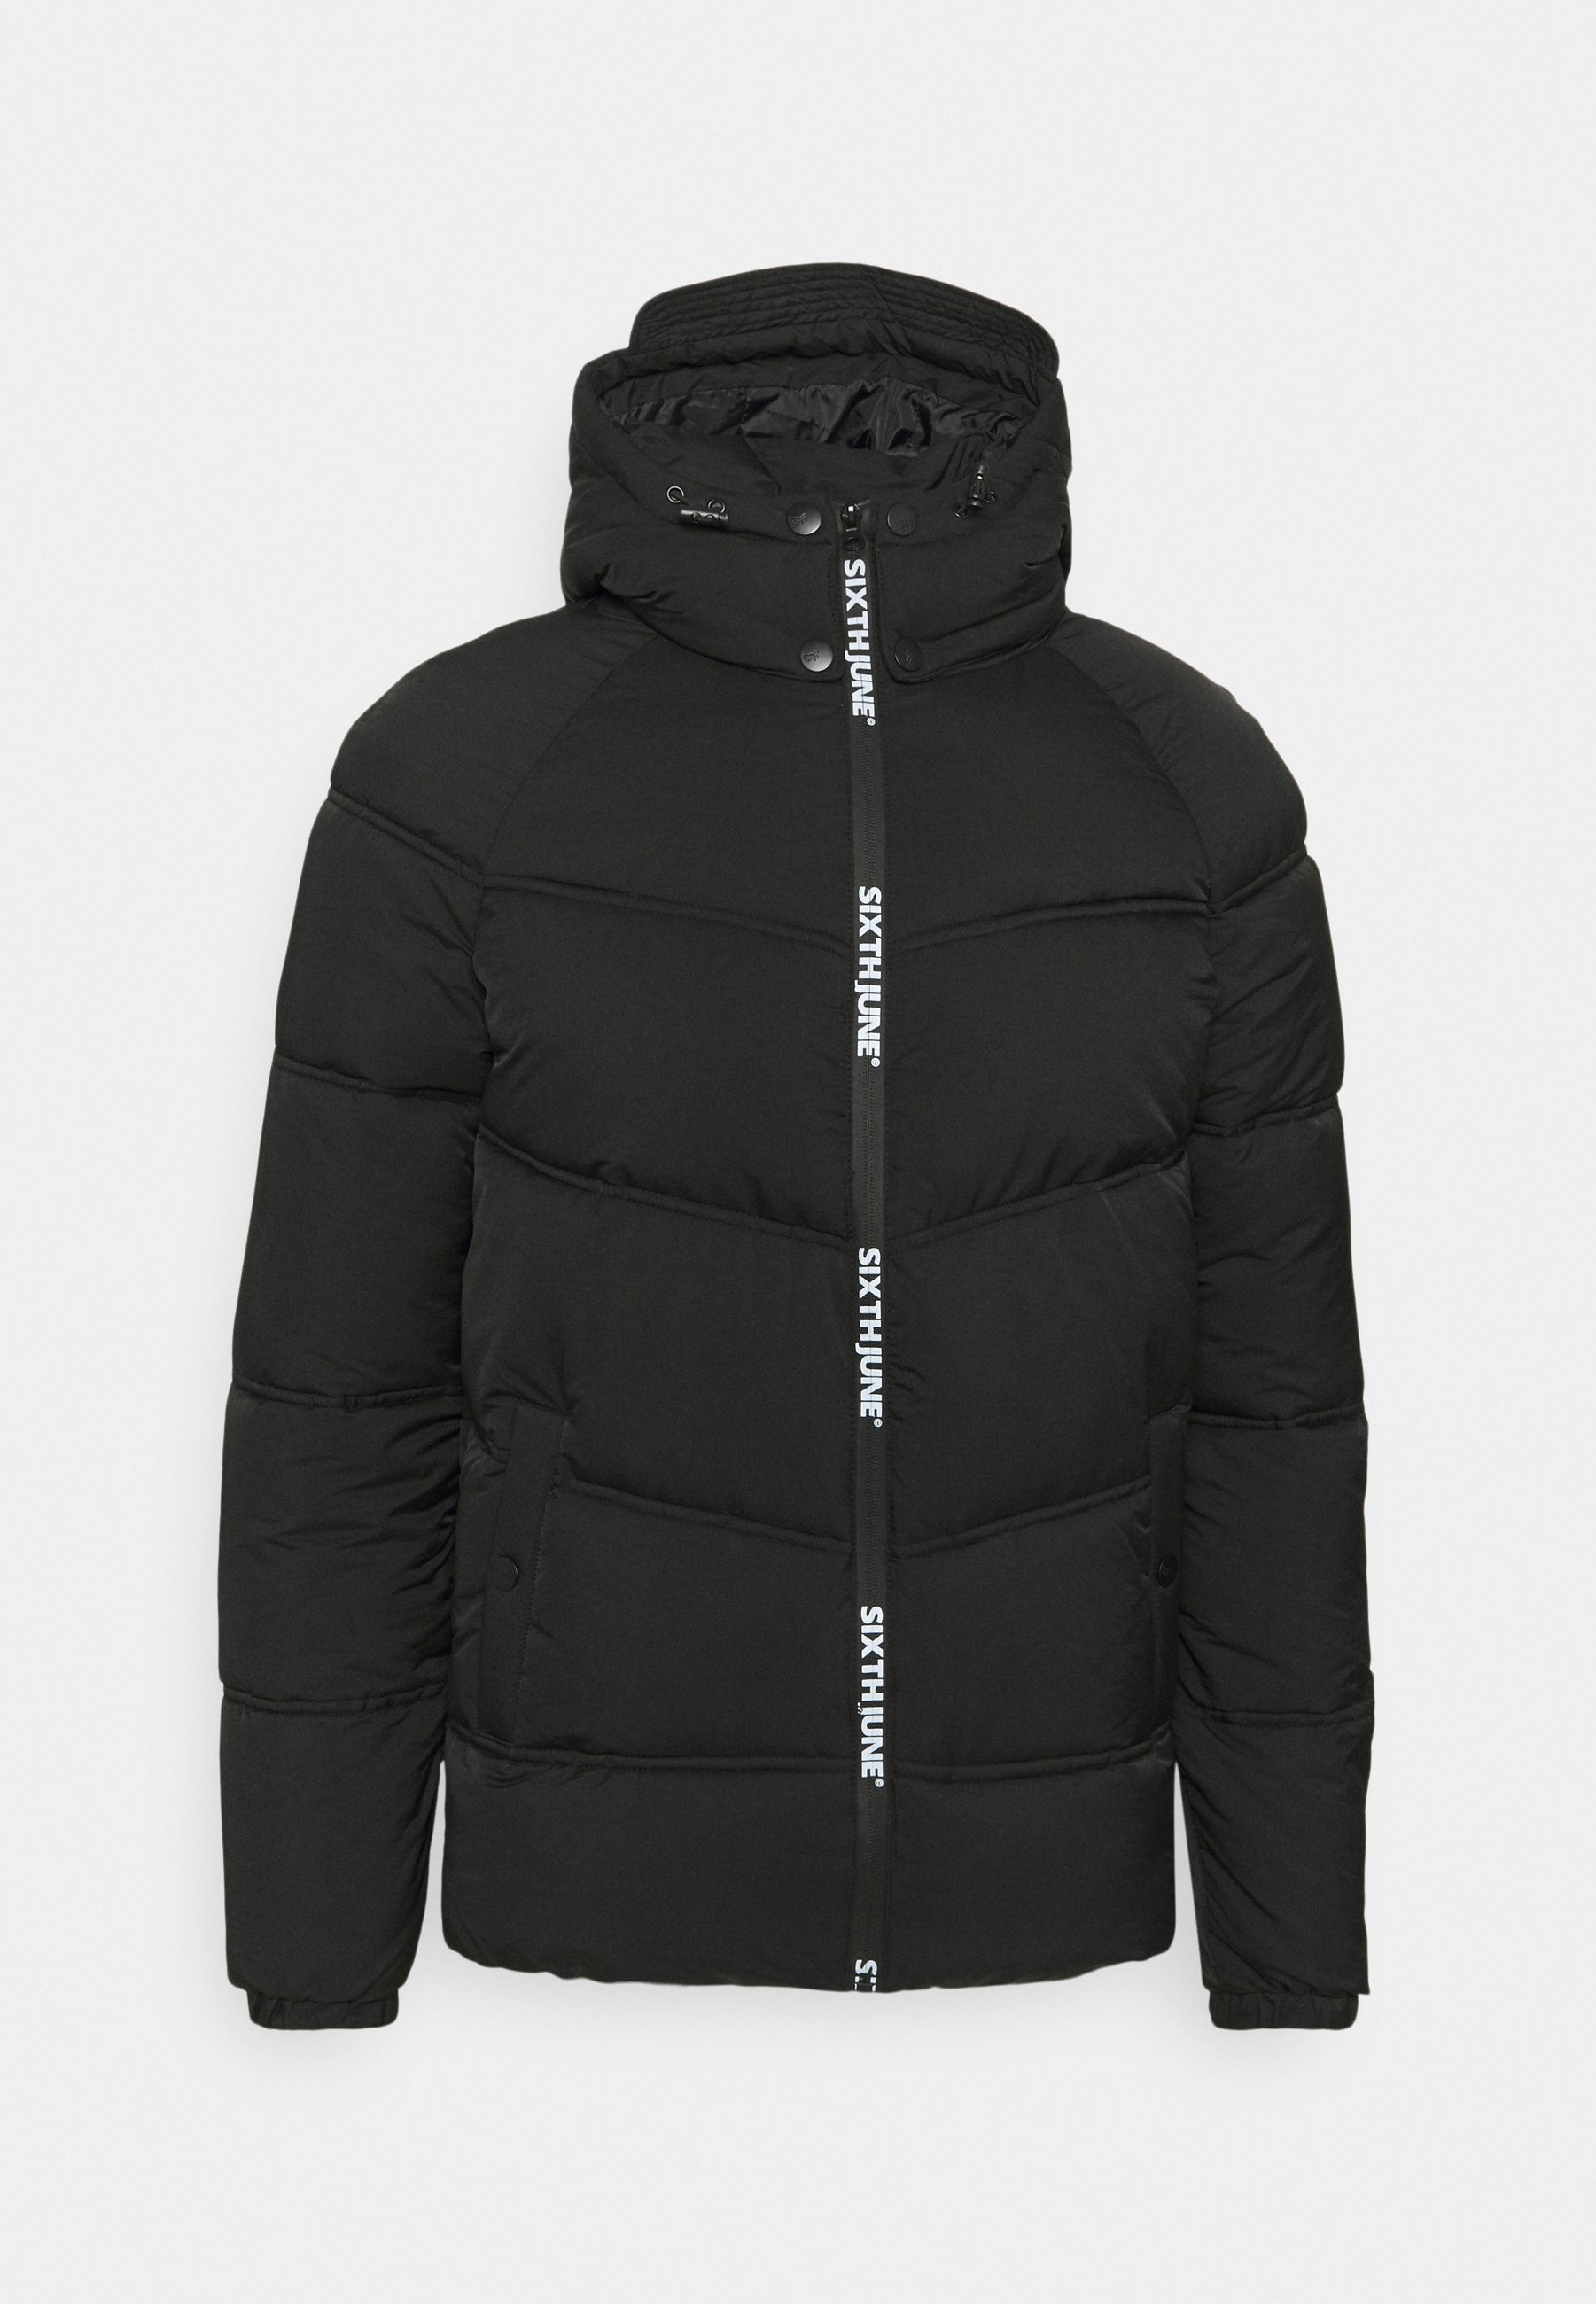 Uomo WITH BRANDED ZIPPERS - Giacca invernale